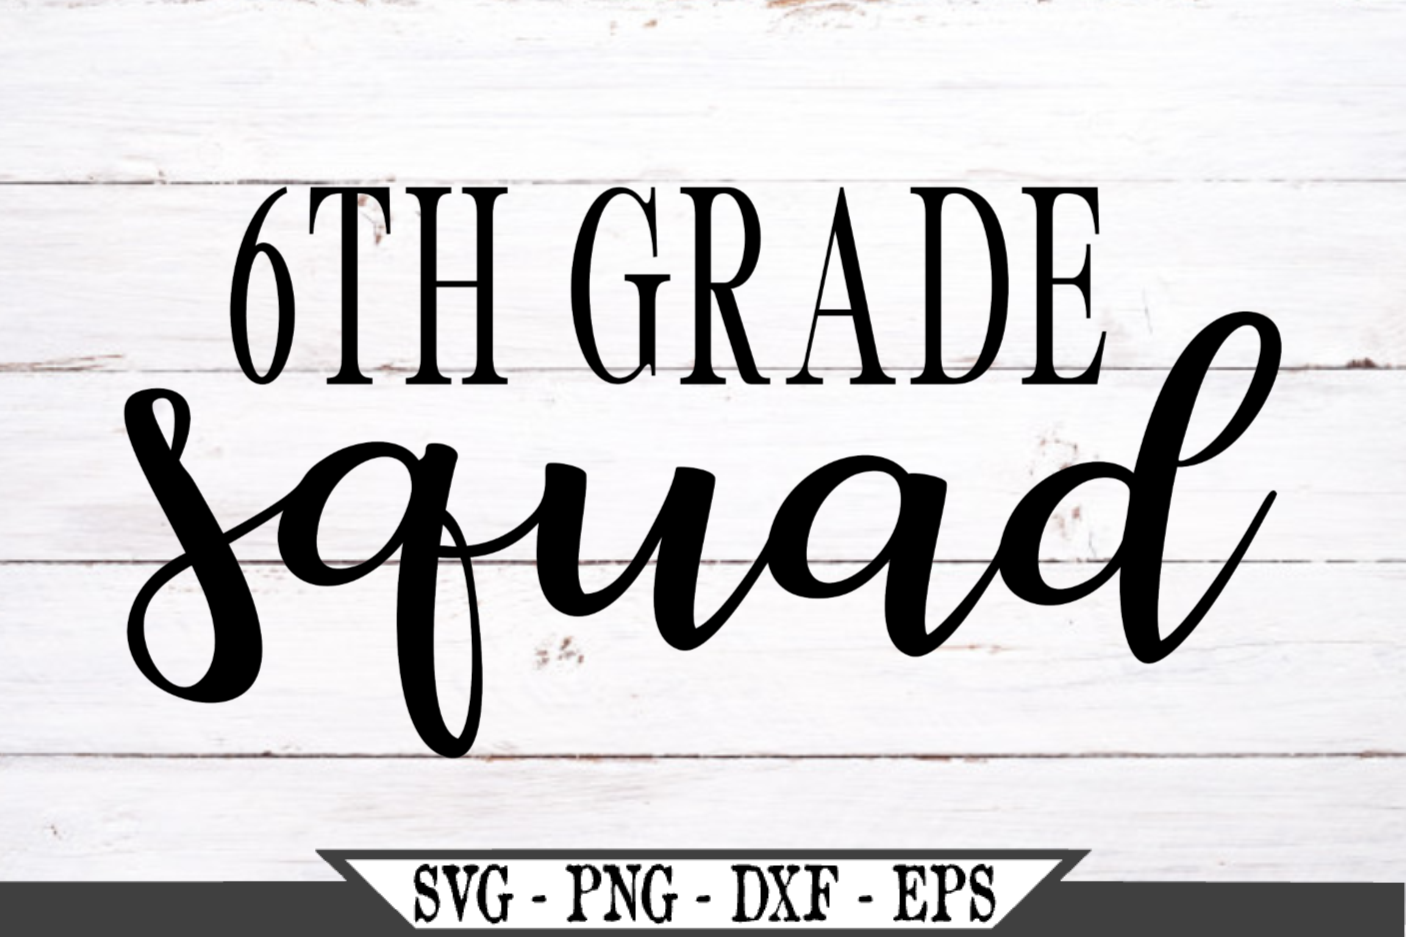 6th Grade Squad for Sixth Grader SVG example image 2